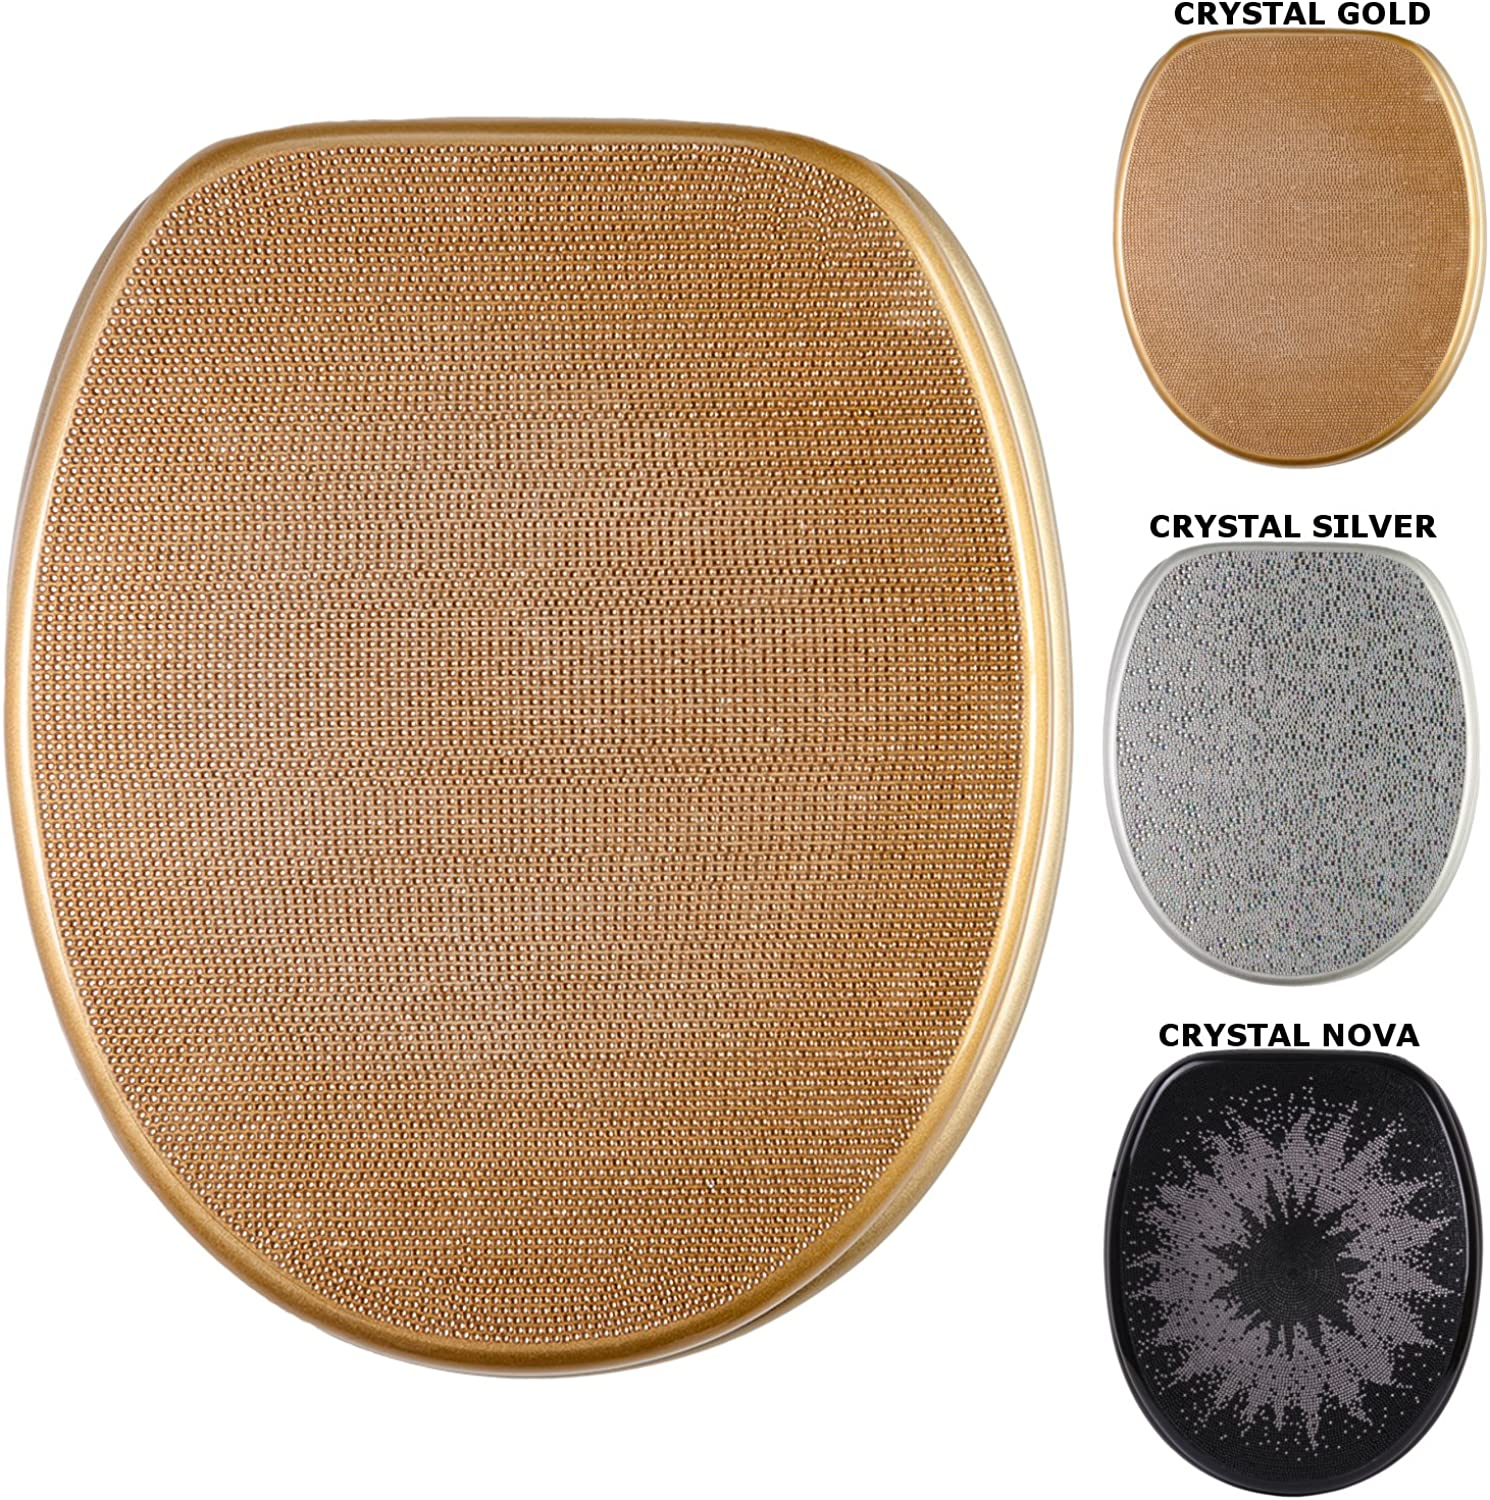 Soft Close Toilet Seat   High-Quality surface   Stable Hinges   Easy to mount (Crystal gold)